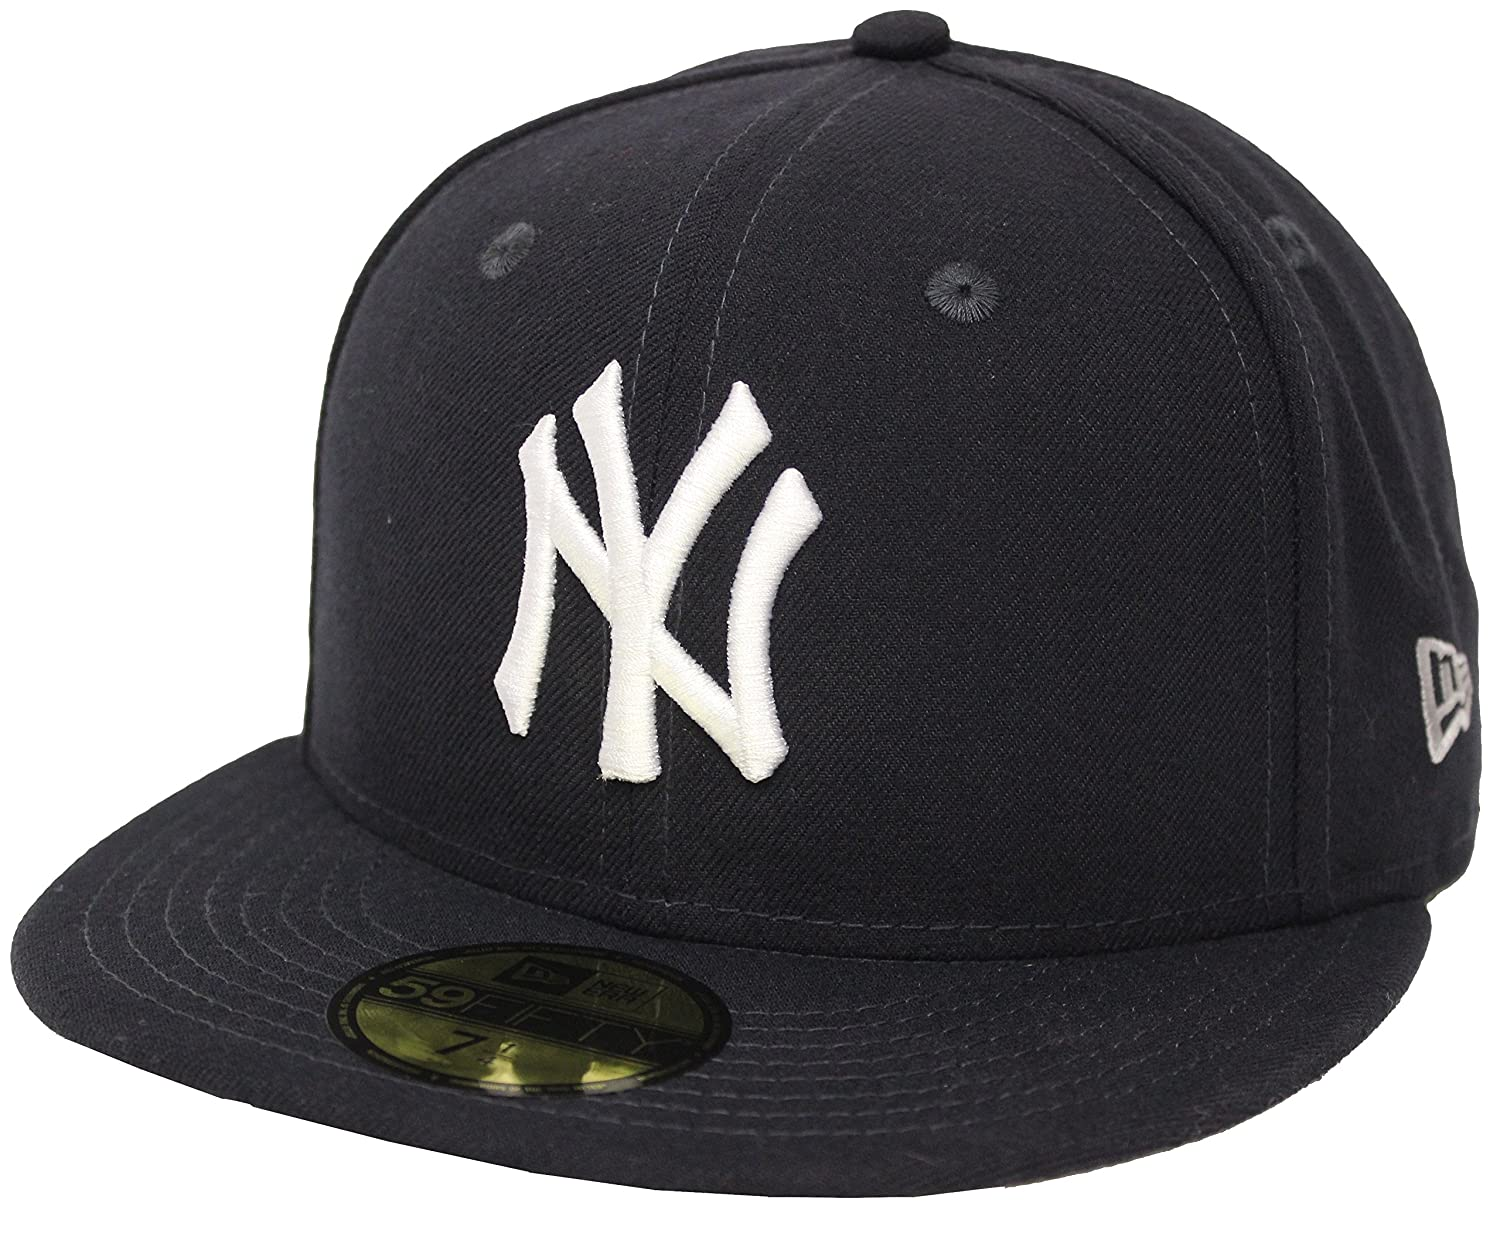 dede9e839 New Era 59Fifty Tribute Turn New York Yankees Navy Fitted Cap at ...